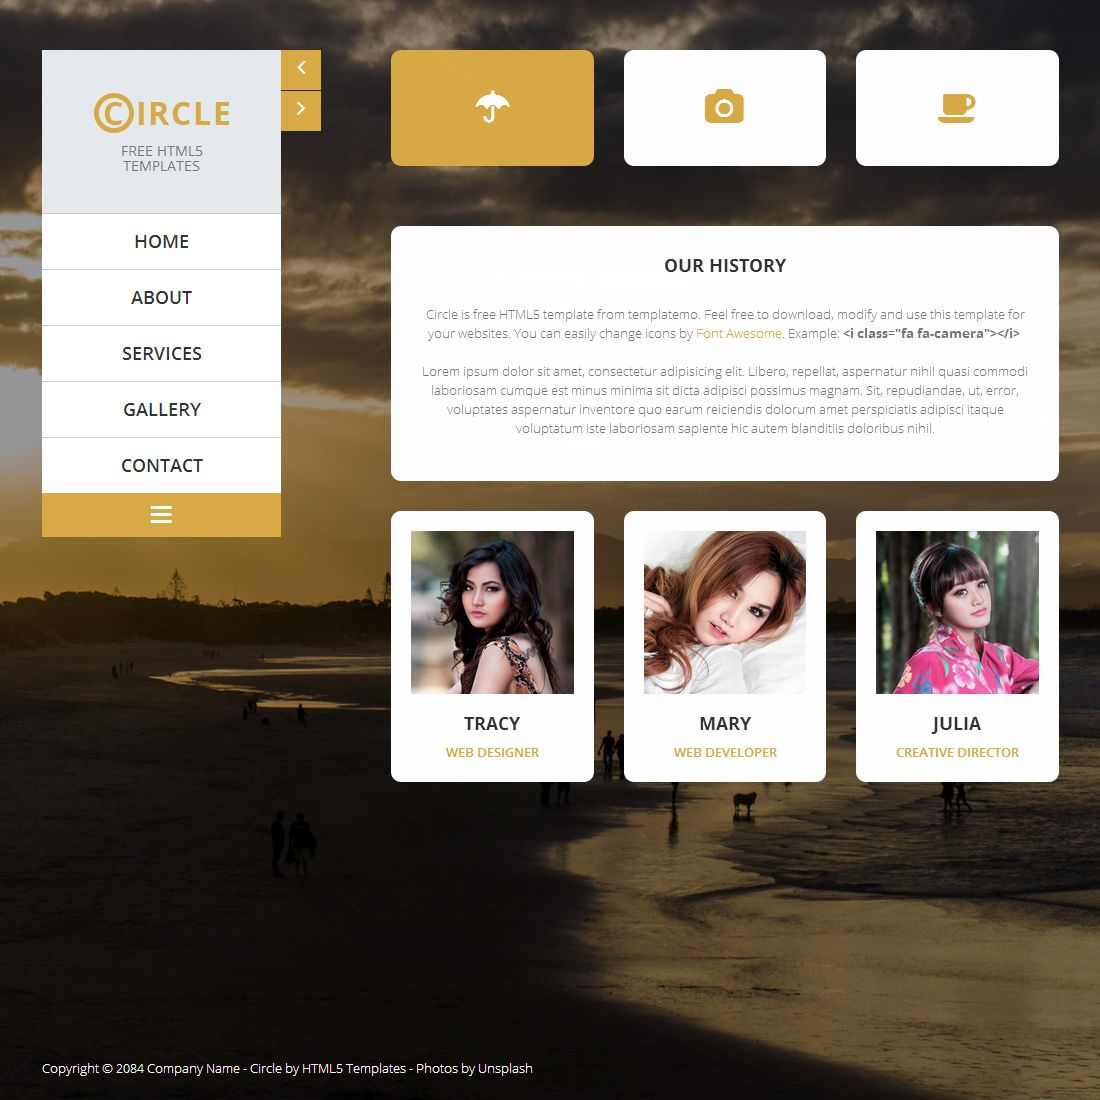 Circle Is Free HTML5 Portfolio Template Using Fading Background Images And Yellow Color Gallery Includes Responsive Lightbox